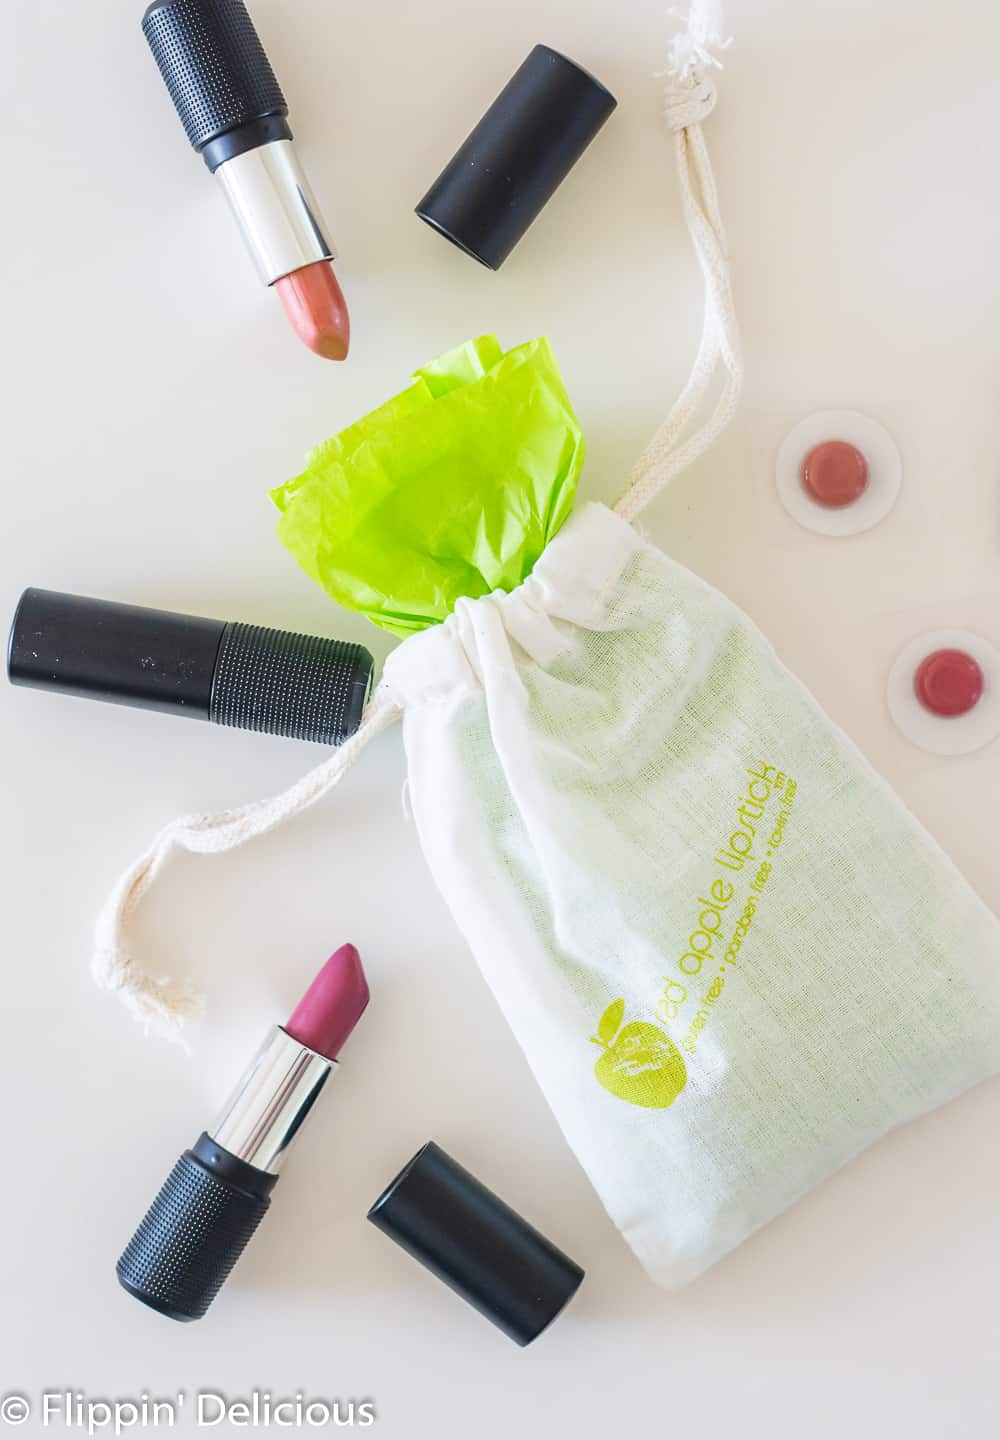 overhead of red apple lipstick drawstring bag filled with gluten free lipstick wrapped in green tissue paper with open gluten free lipsticks beside it, all on a white counter